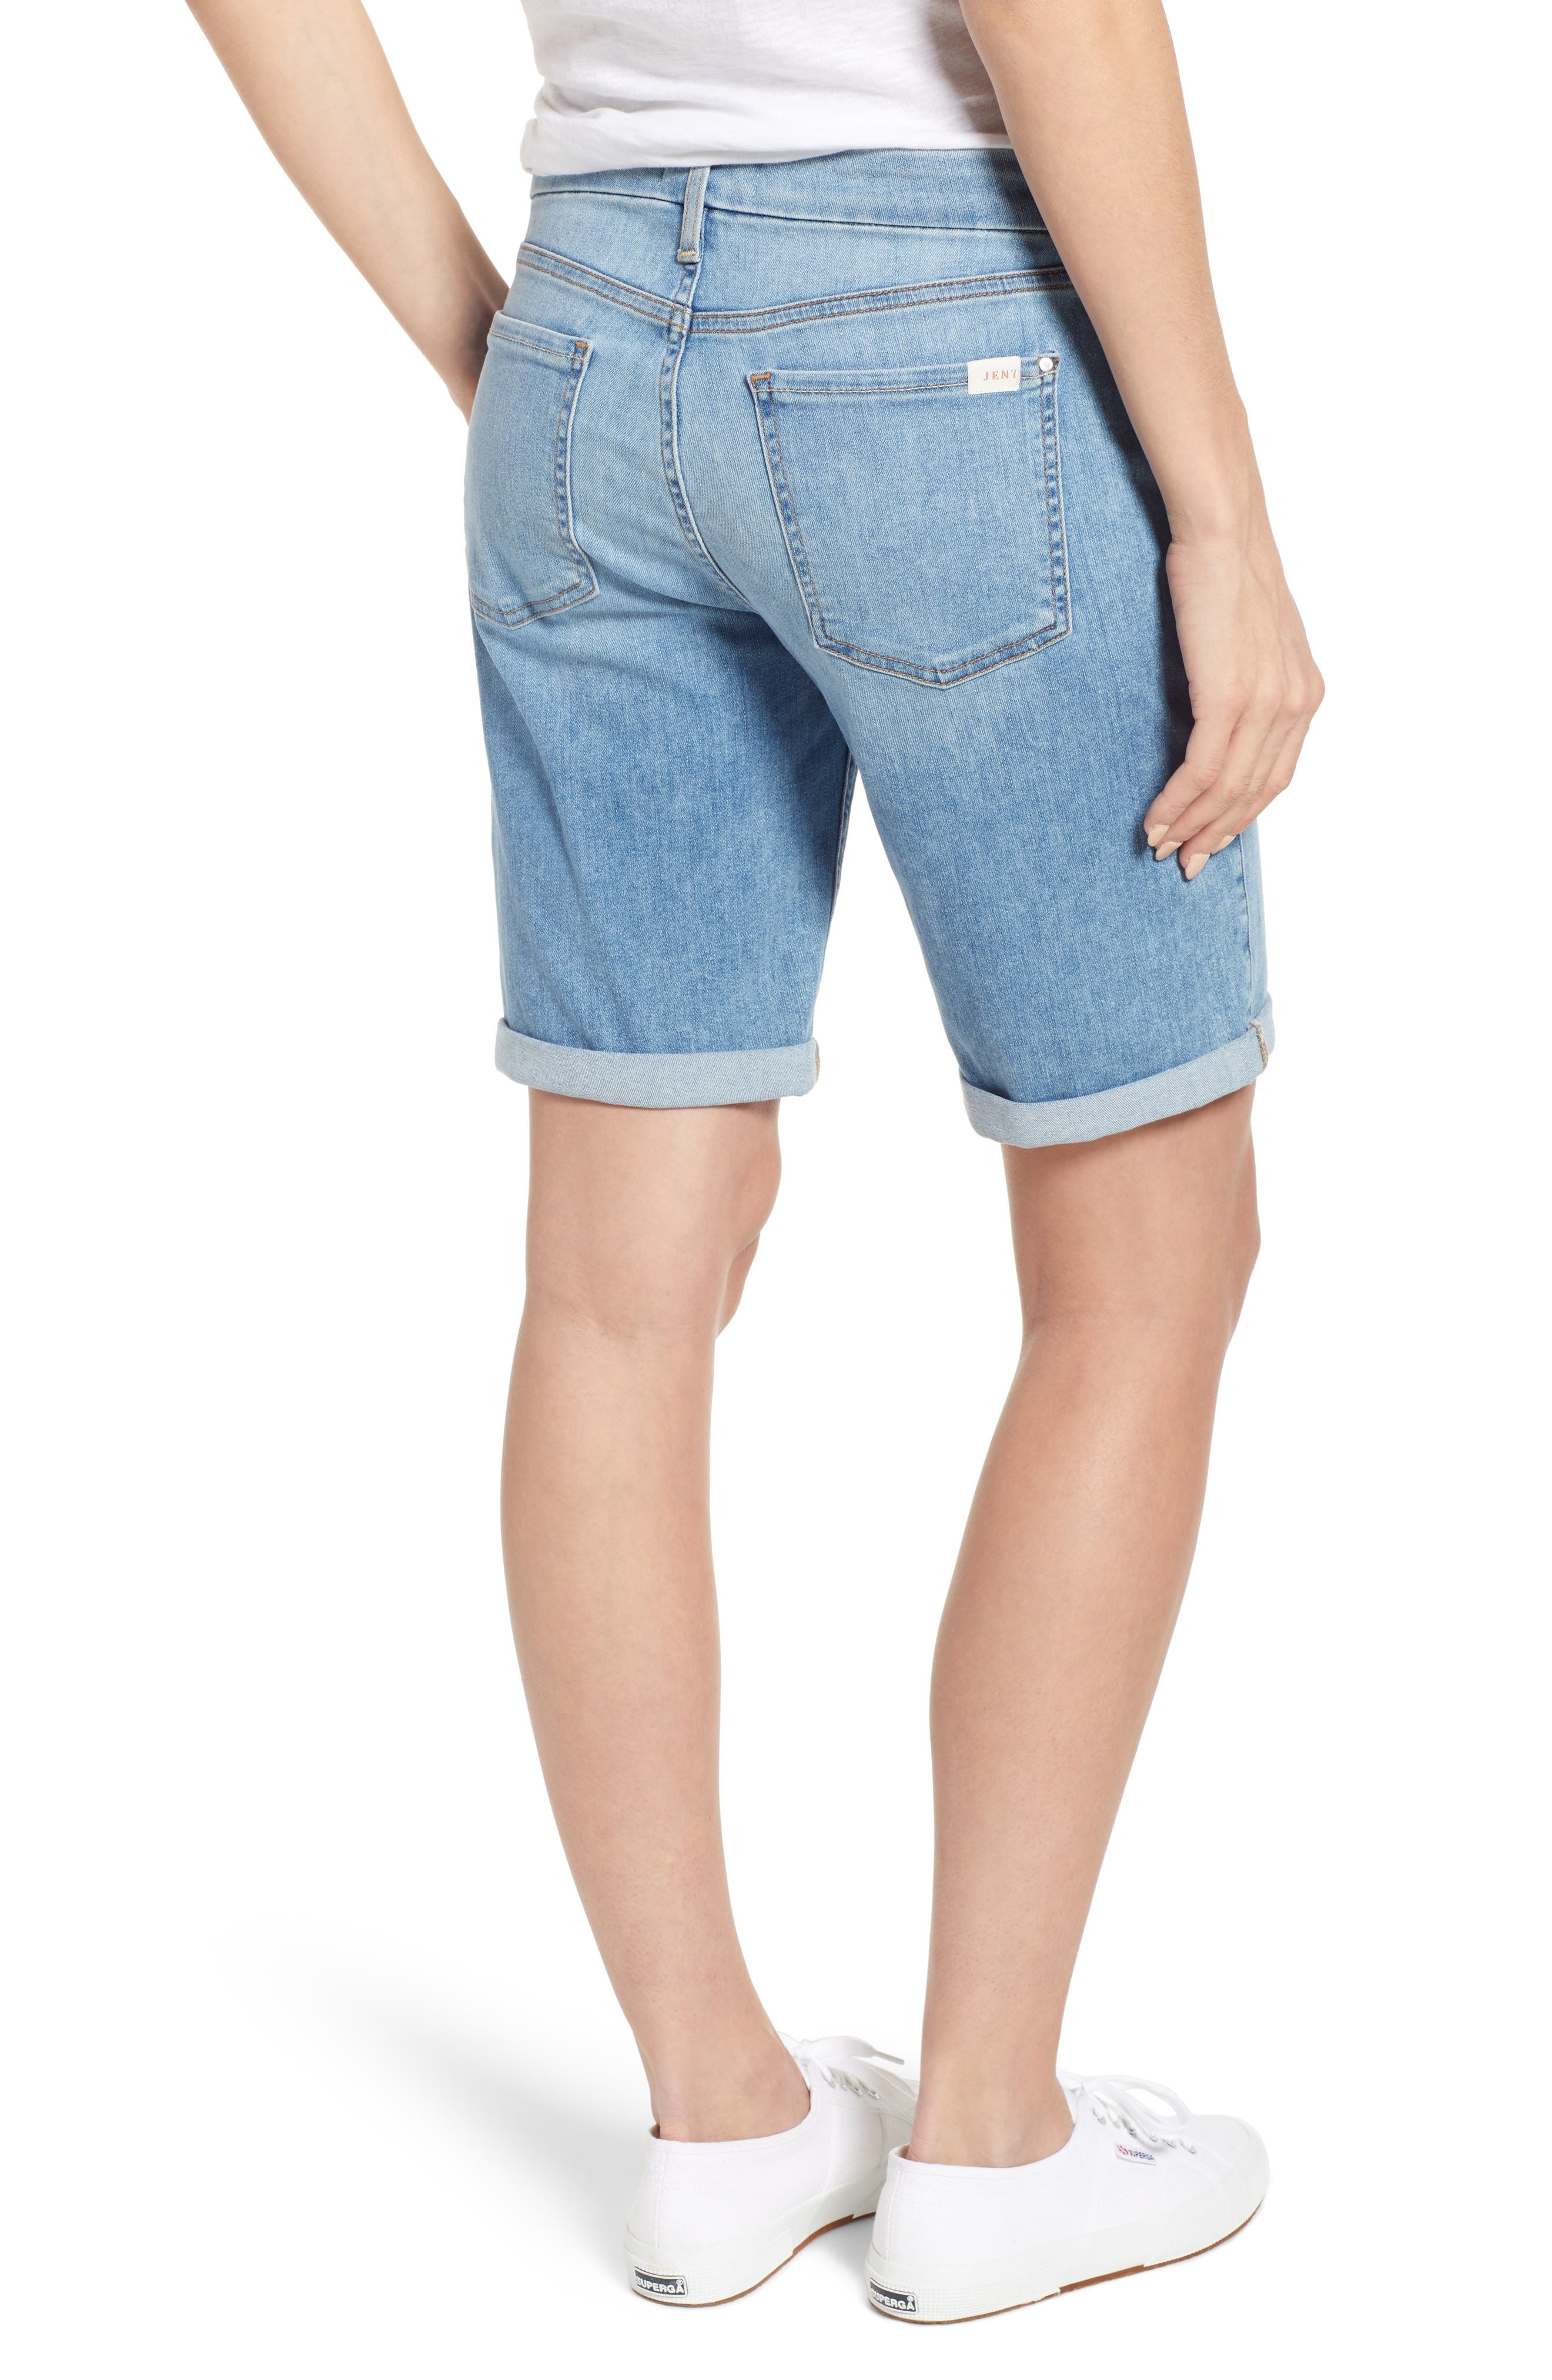 JEN7 BY 7 FOR ALL MANKIND, Roll Cuff Bermuda Shorts, Alternate thumbnail 2, color, LA QUINTA